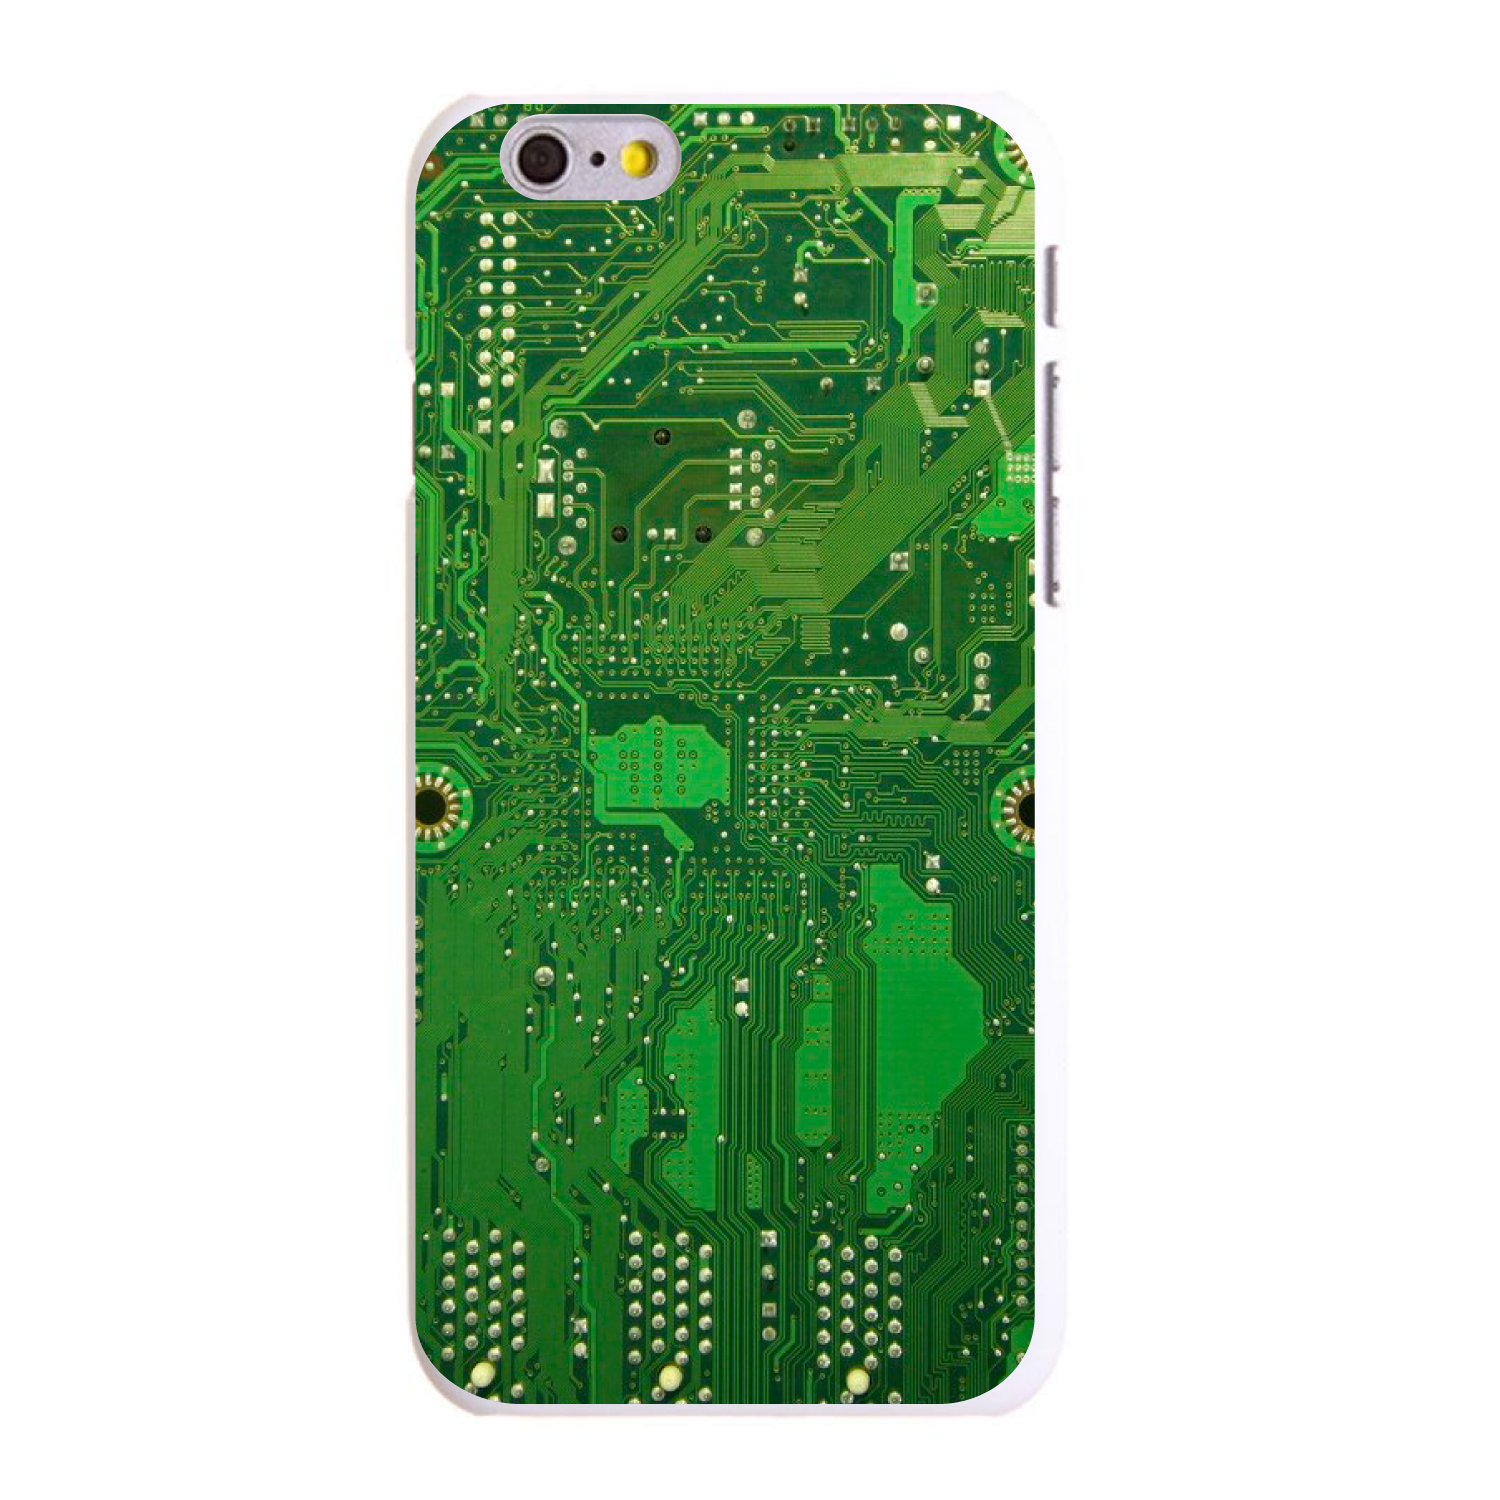 """CUSTOM White Hard Plastic Snap-On Case for Apple iPhone 6 PLUS / 6S PLUS (5.5"""" Screen) - Green Circuit Board"""